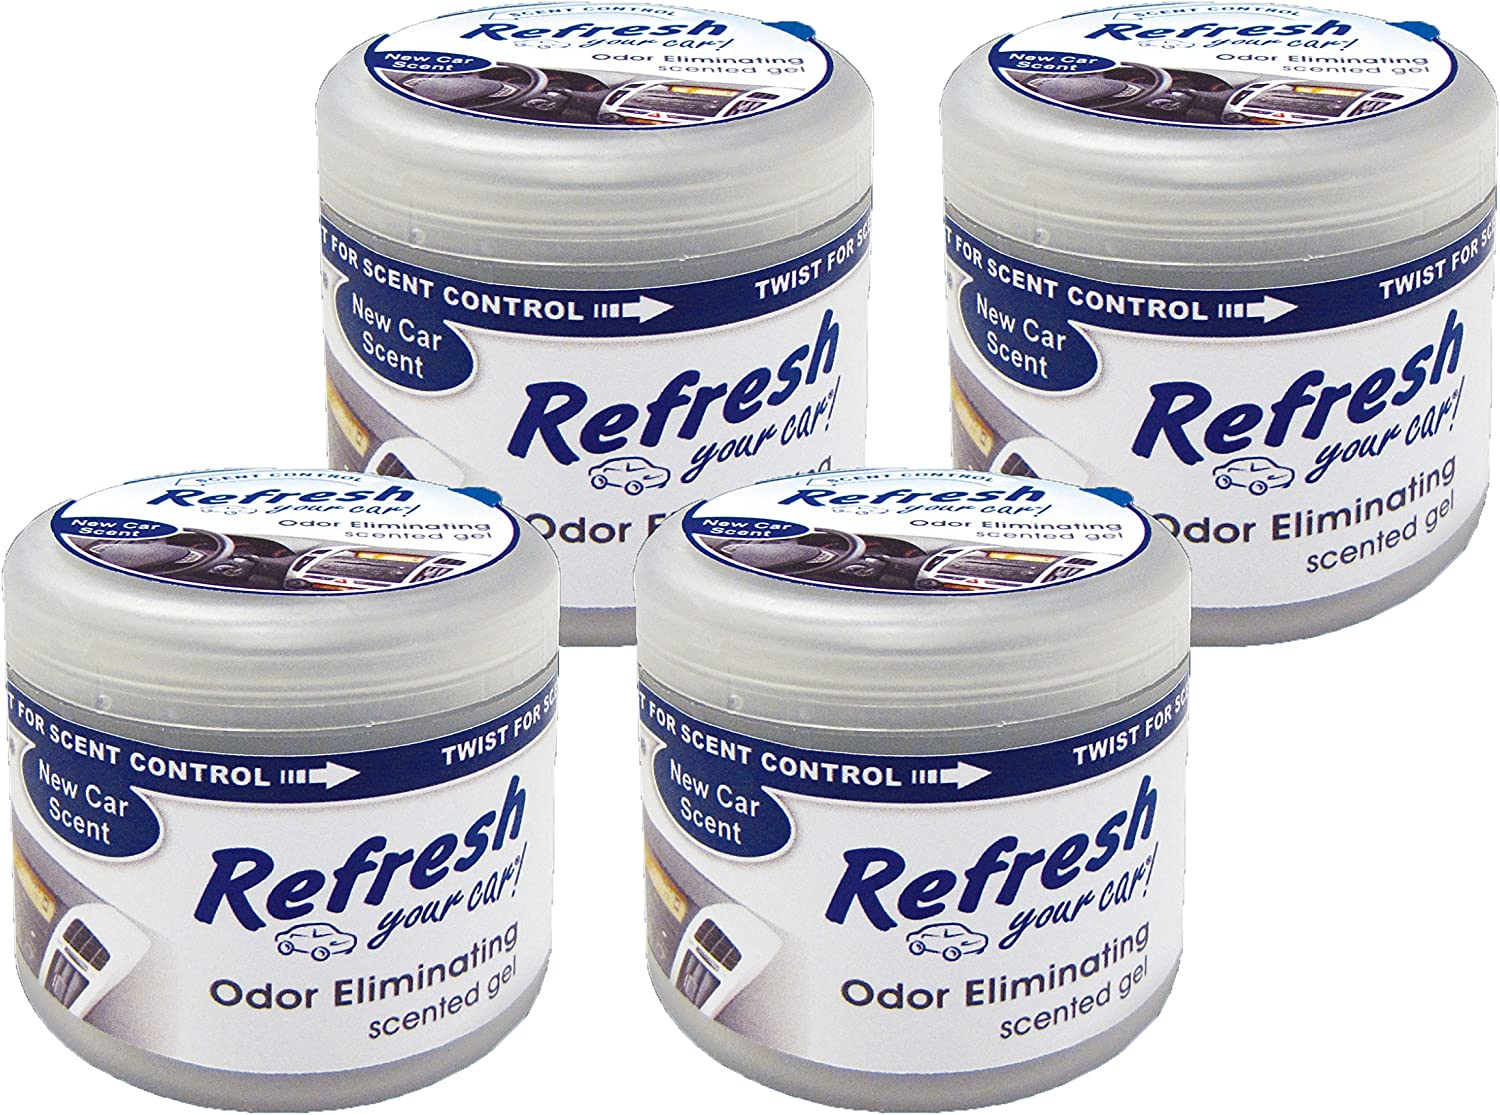 Refresh Your Car! 84941 New Car Scent Scented Gel Air Freshener, 4.5 oz, 4 Pack